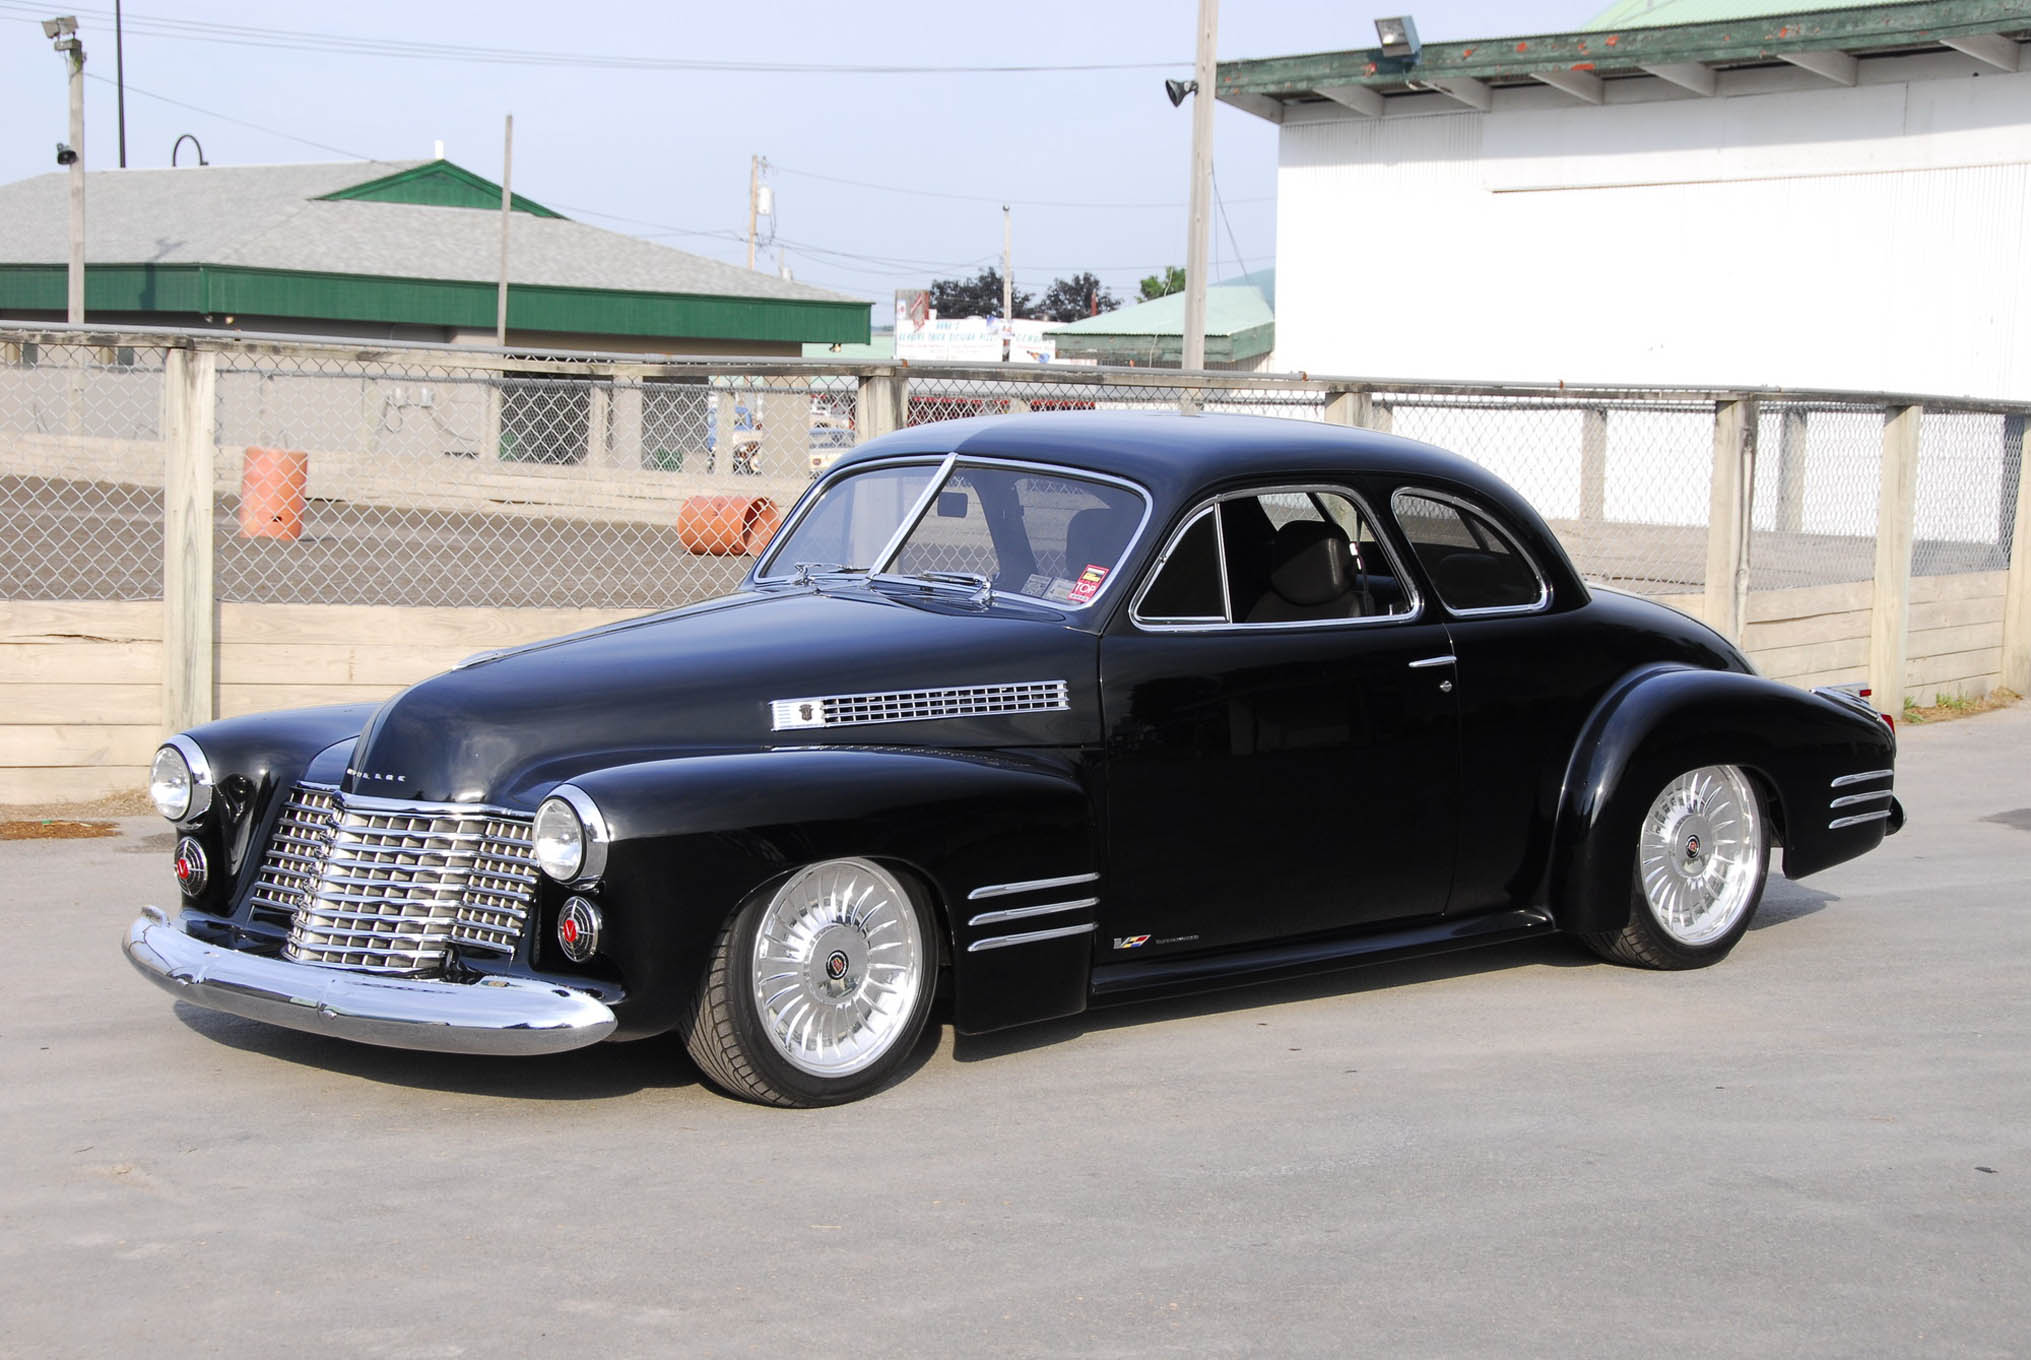 Infusing classic elegance with modern performance, Sotiri Dushas' 1941 Cadillac coupe was perched on a custom Tucci chassis with Corvette C6 suspension while a 2006 Cadillac 4.4L supercharged V-8 makes power linked to a six-speed trans. Updated body lines included a shortened and pancaked hood with a reworked and laidback grille.